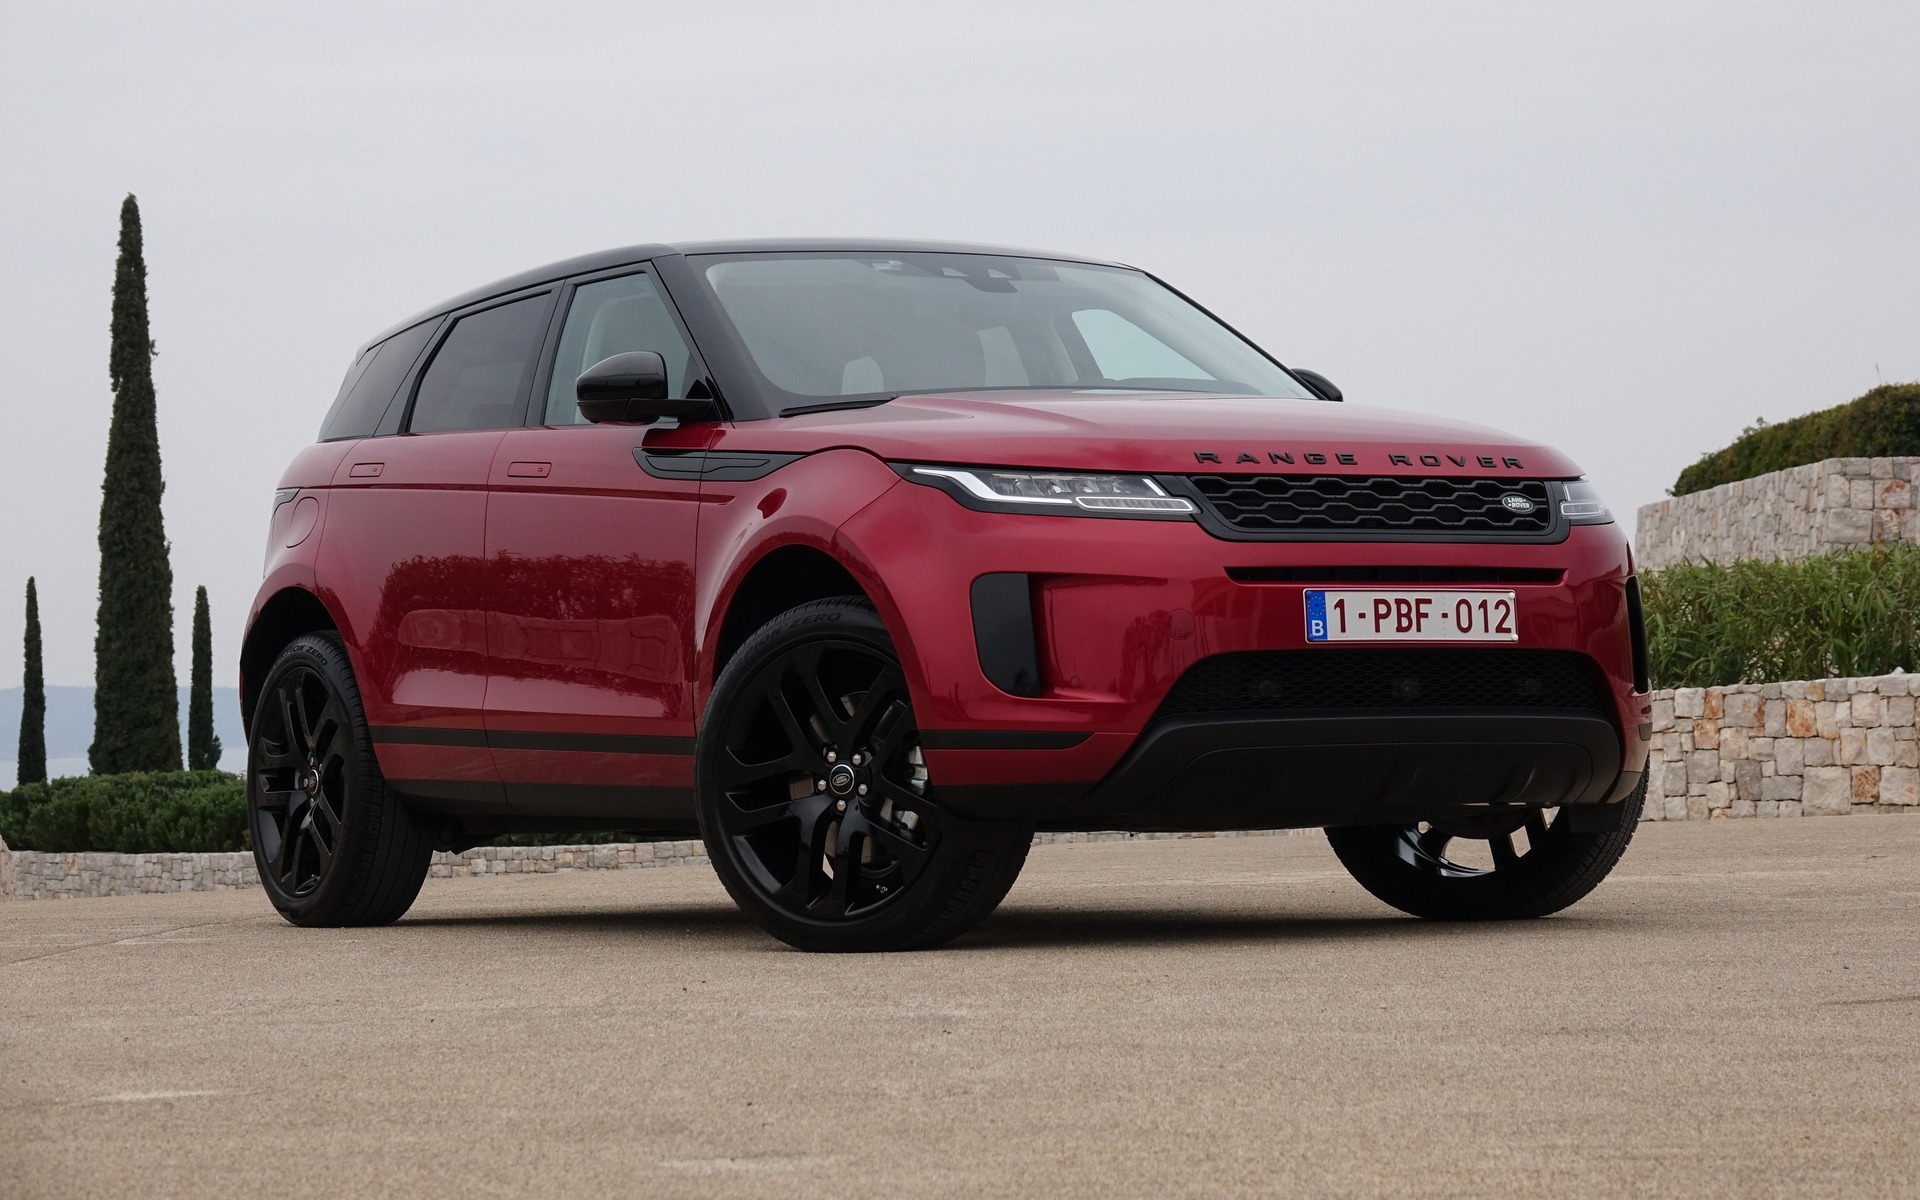 2020 Land Rover Range Rover Sport: Changes, Equipment, Price >> 2020 Range Rover Evoque More Than A Simple Redesign The